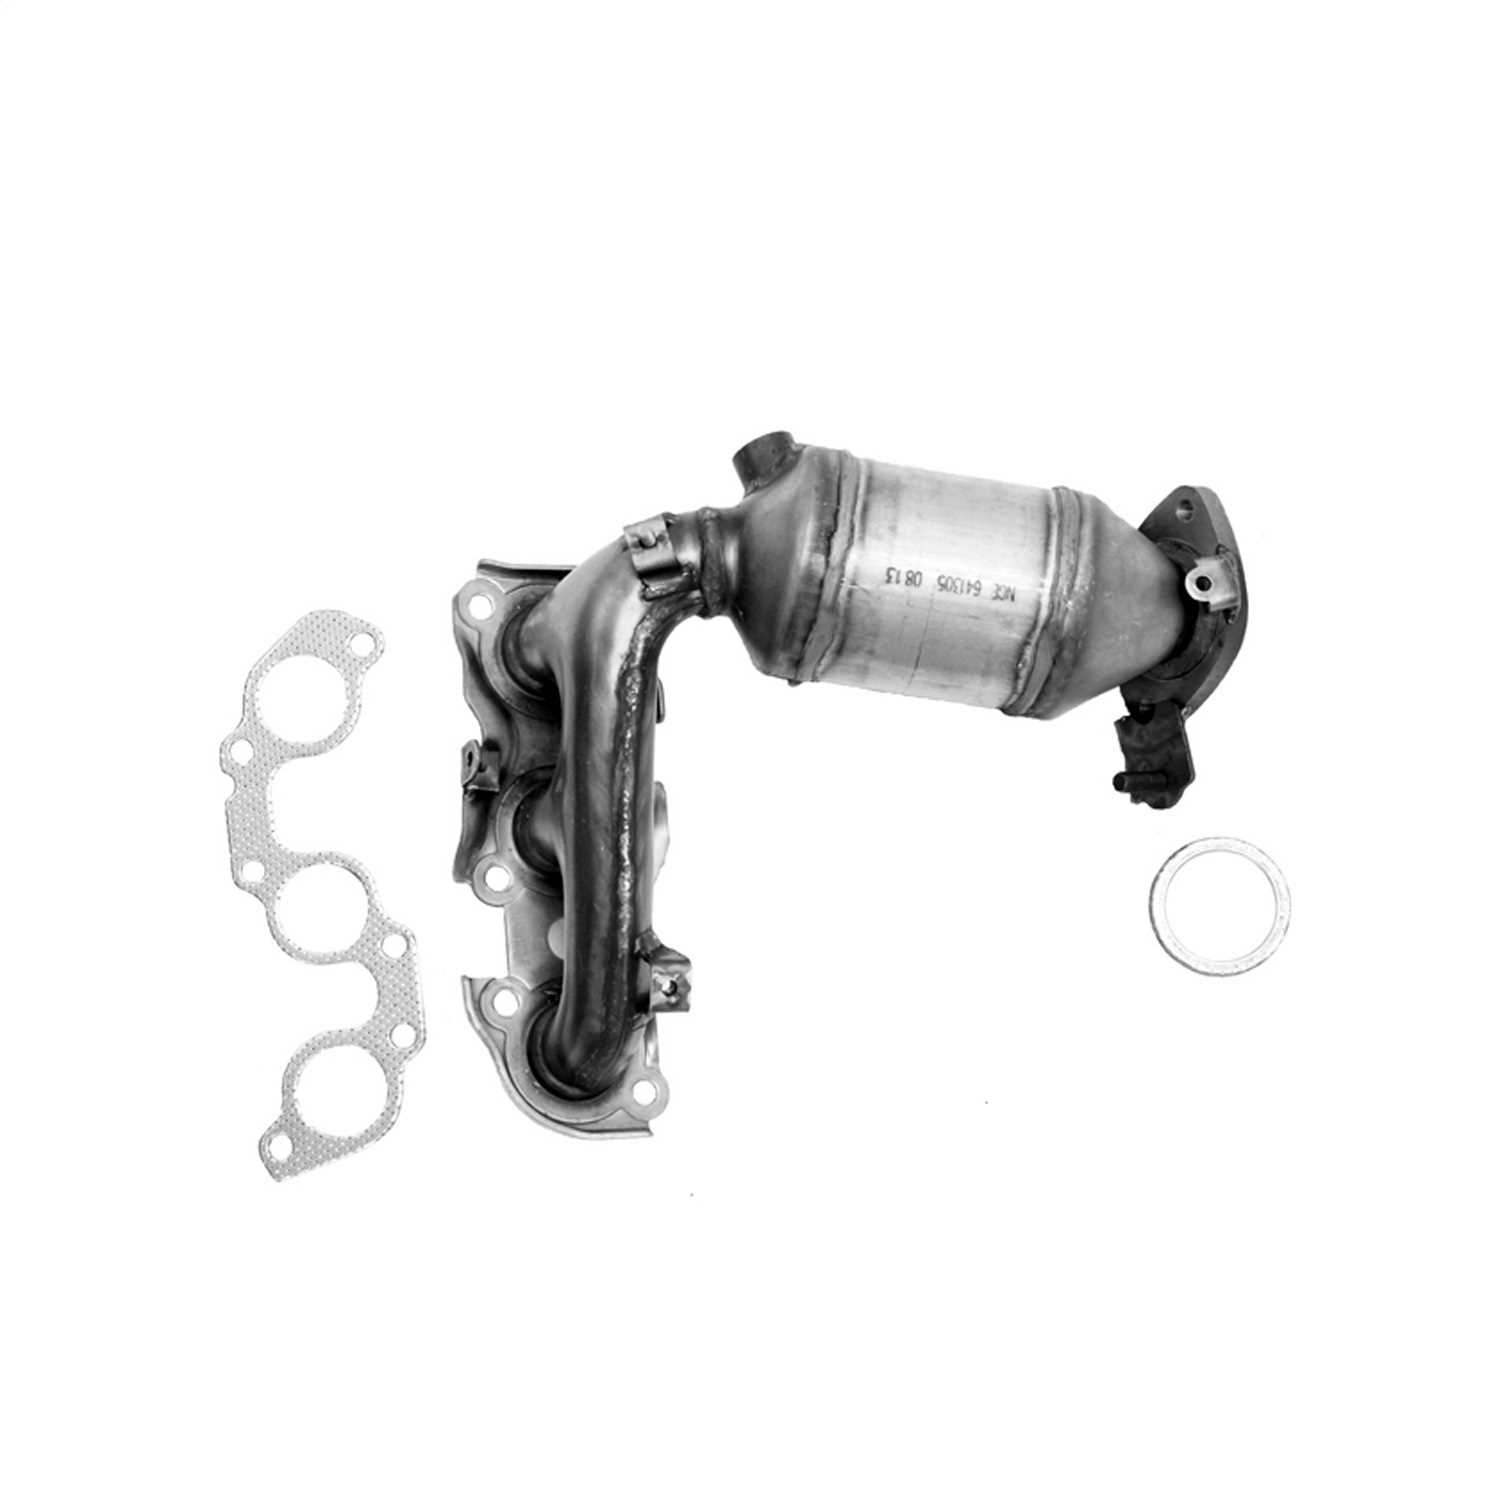 2051170 Flowmaster 49 State Catalytic Converters Direct Fit Catalytic Converter